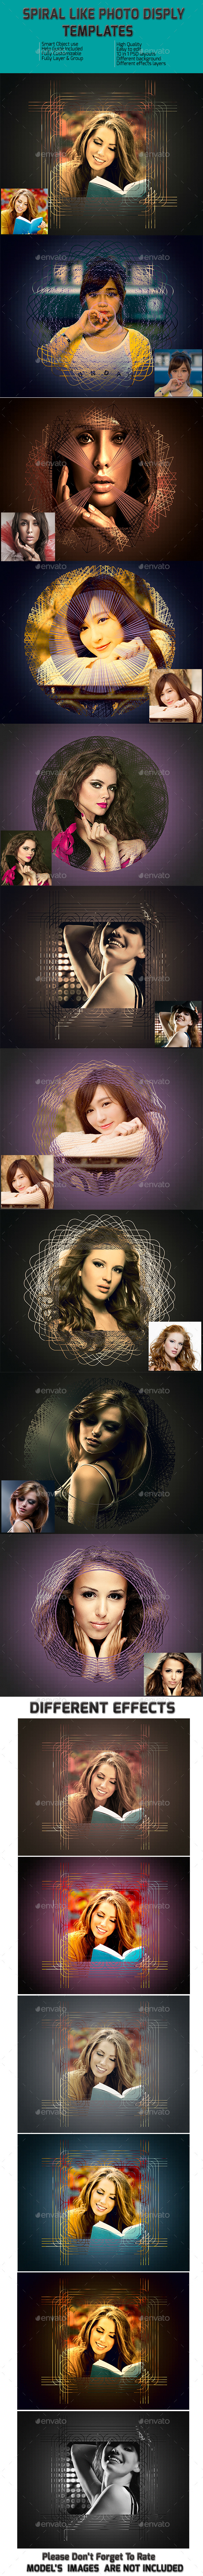 GraphicRiver Spiral Like Frame Templates 9524162